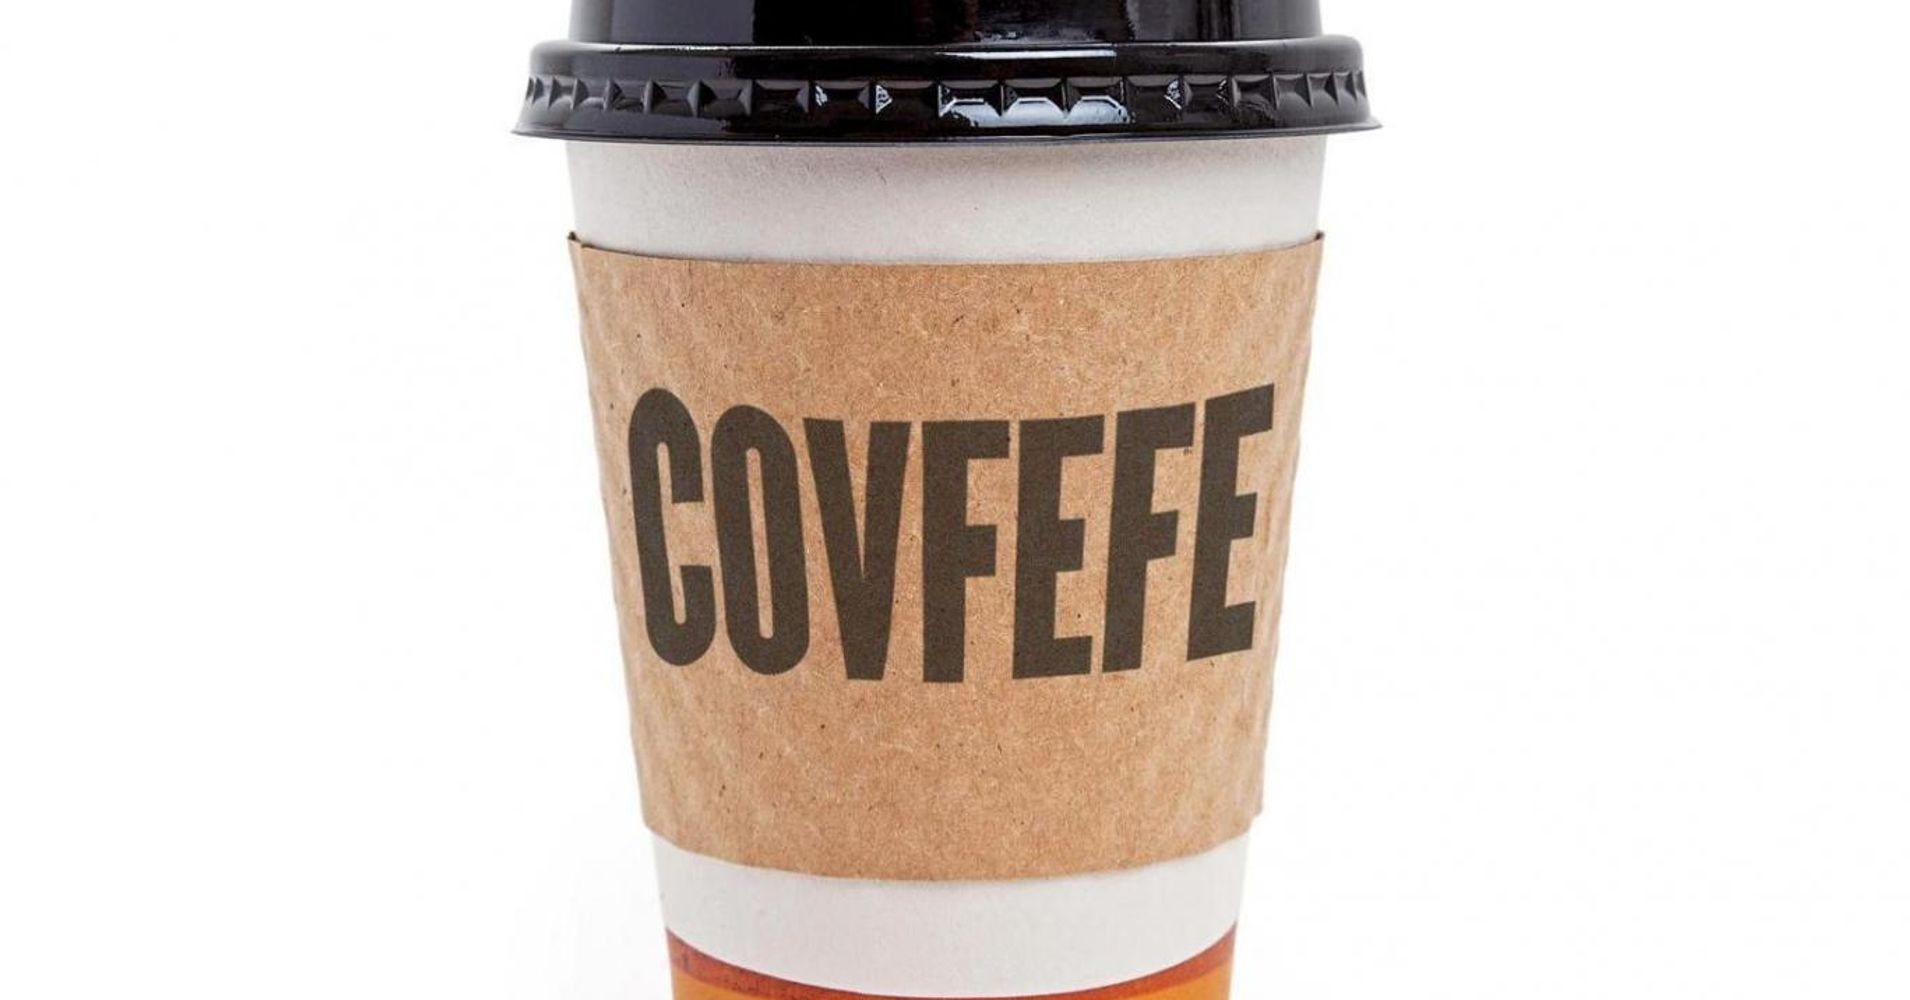 """Covfefe"" - Social Confetti - Laughing Together And Being United Regardless Of Our Beliefs."